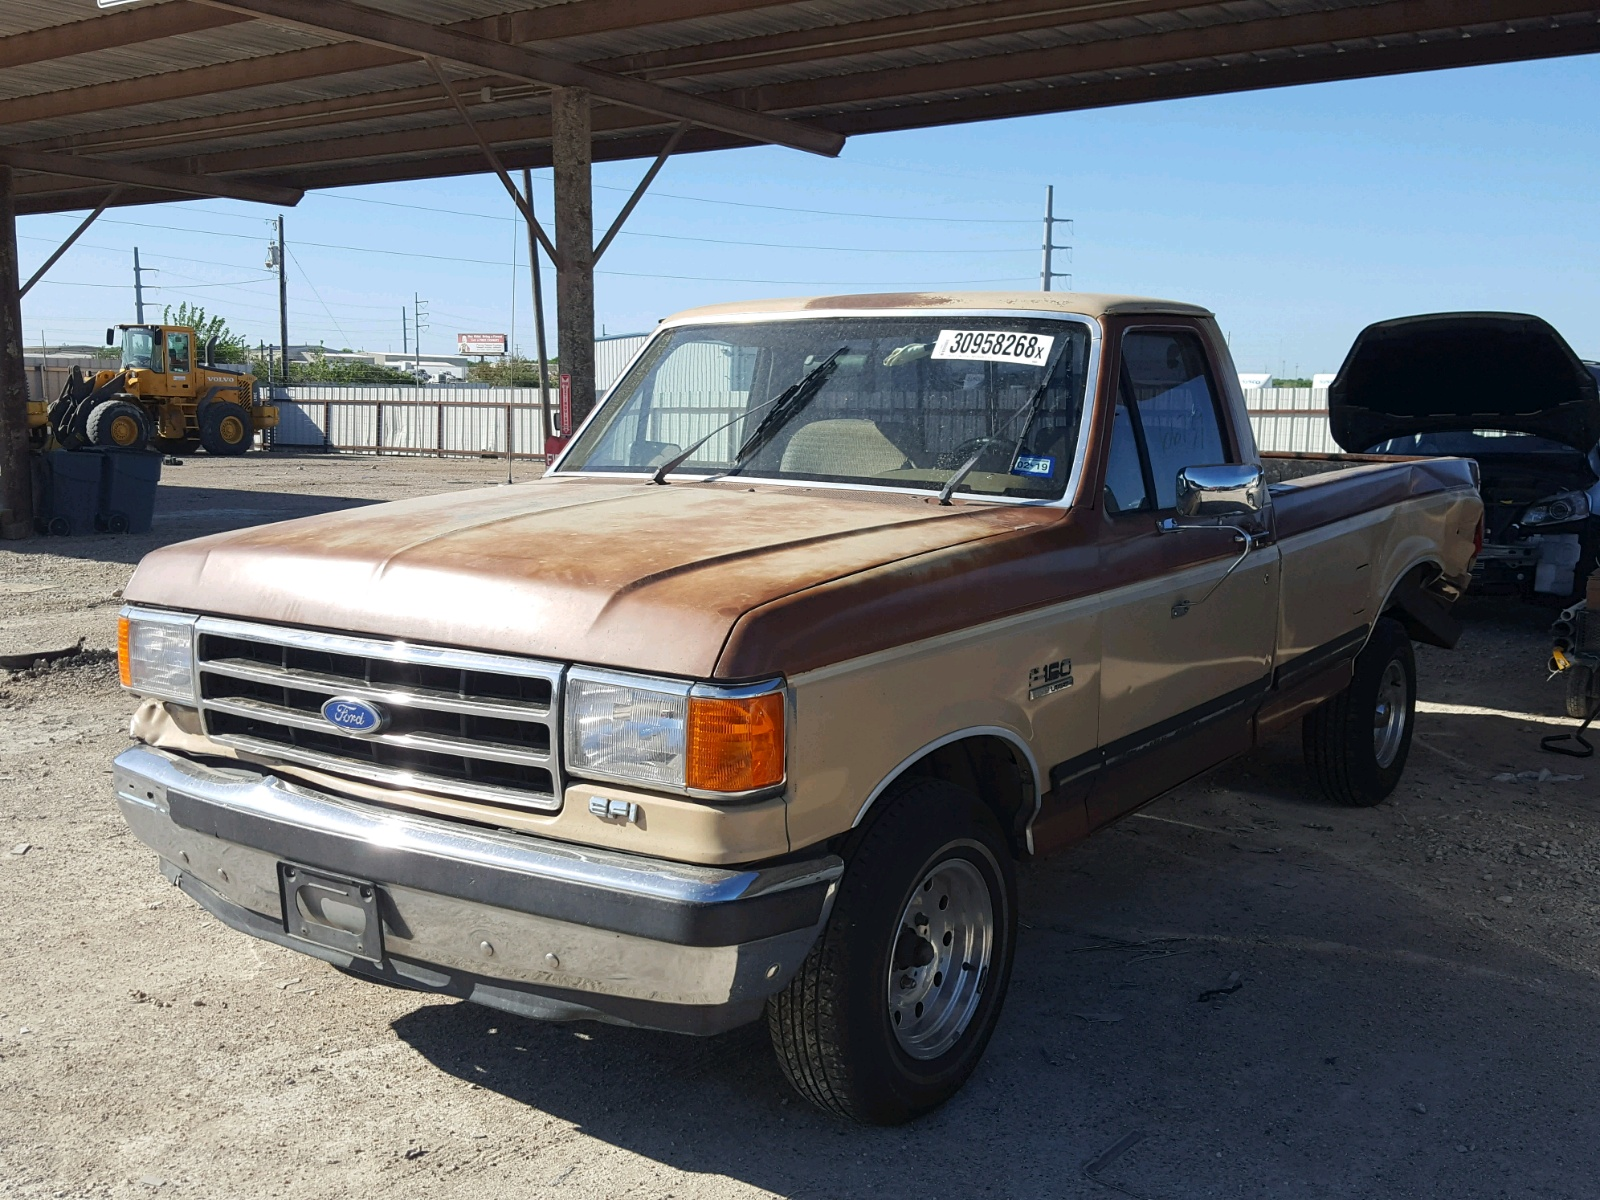 1989 ford f150 1 1989 ford f150 2